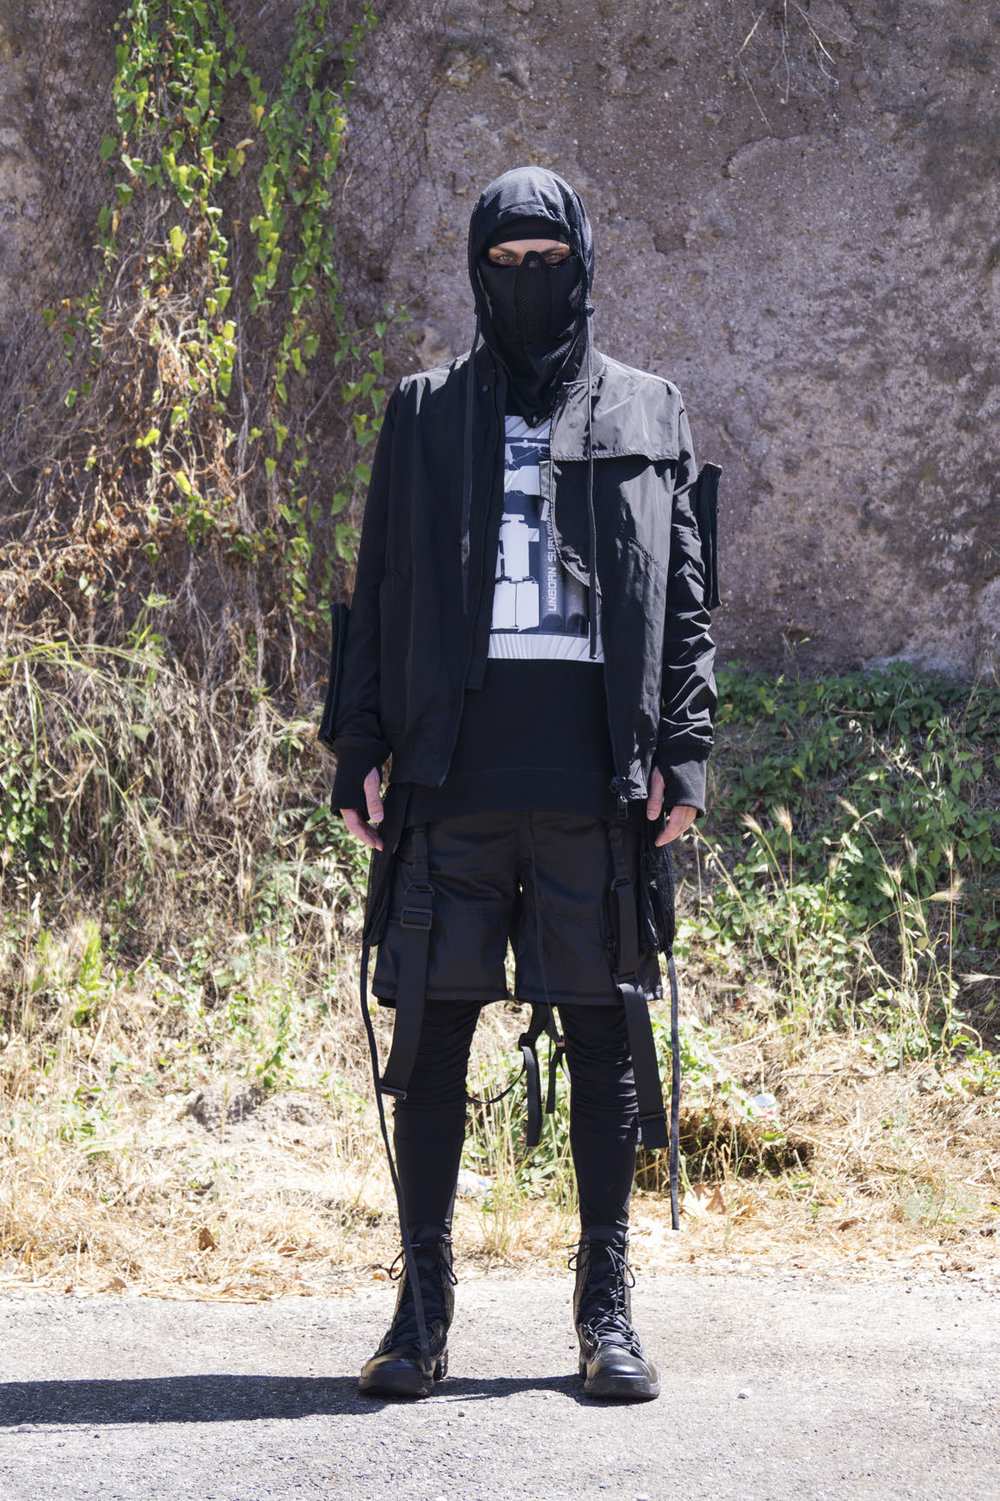 GALLSS18_UNBORNSURVIVAL_LOOKBOOK_MANRED (3)_Page_06.jpg